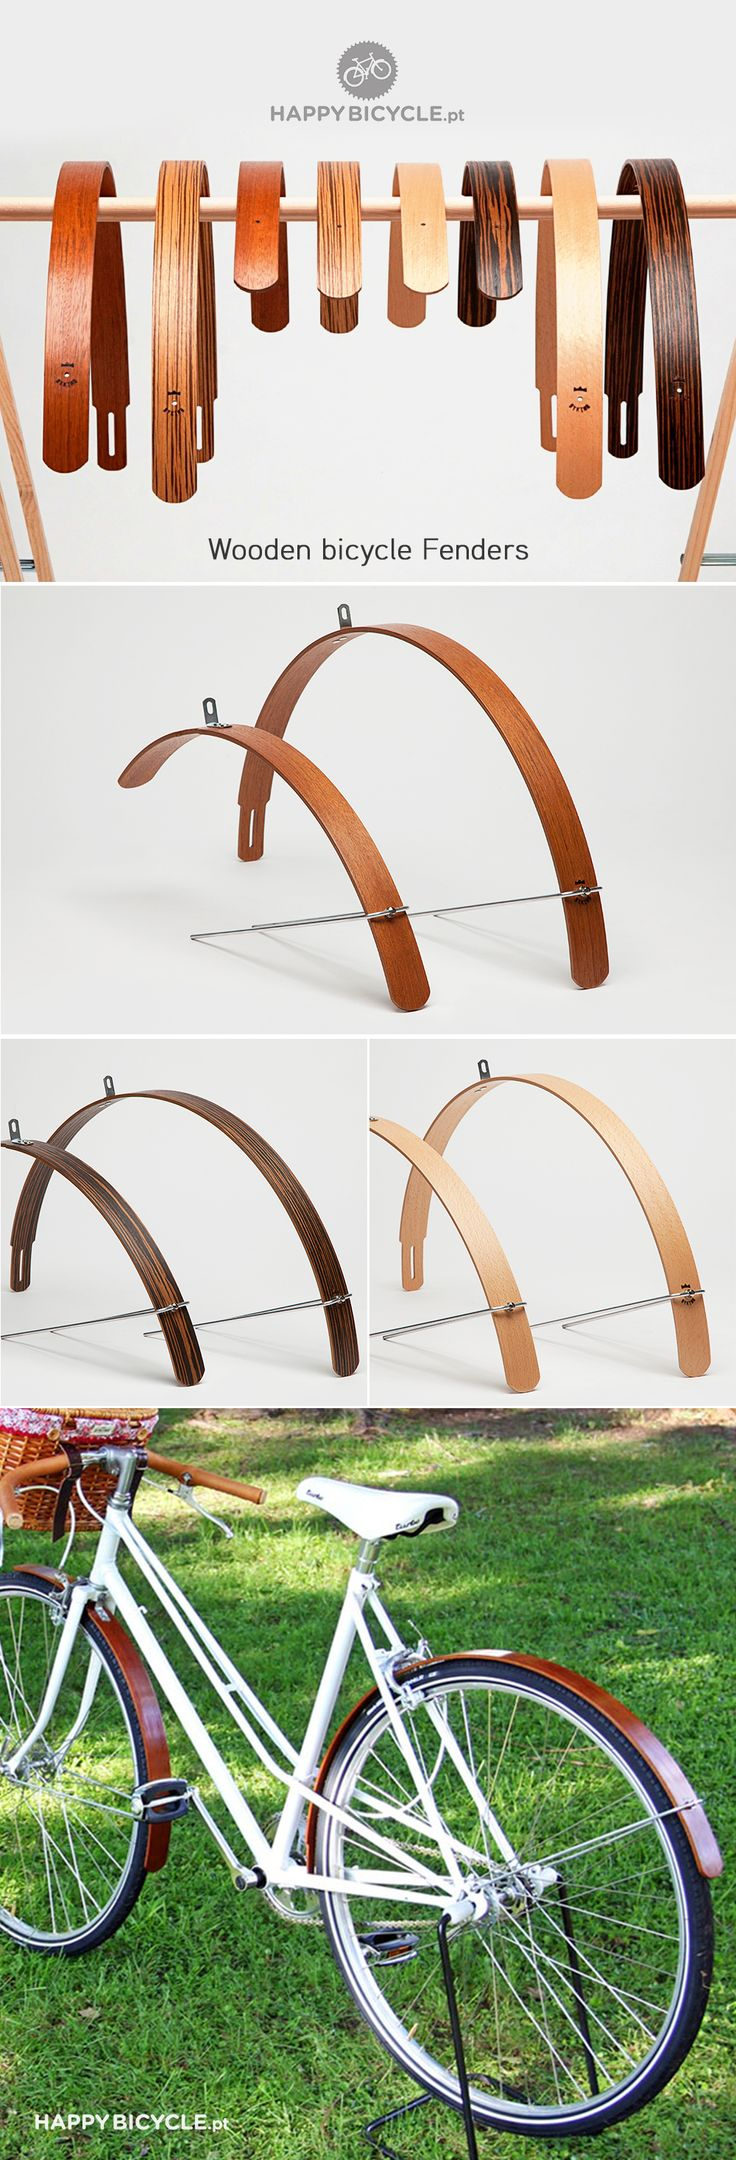 Wood Bicycle Fenders | by Happy Bicycle Store. #Beautiful #Bicycle.